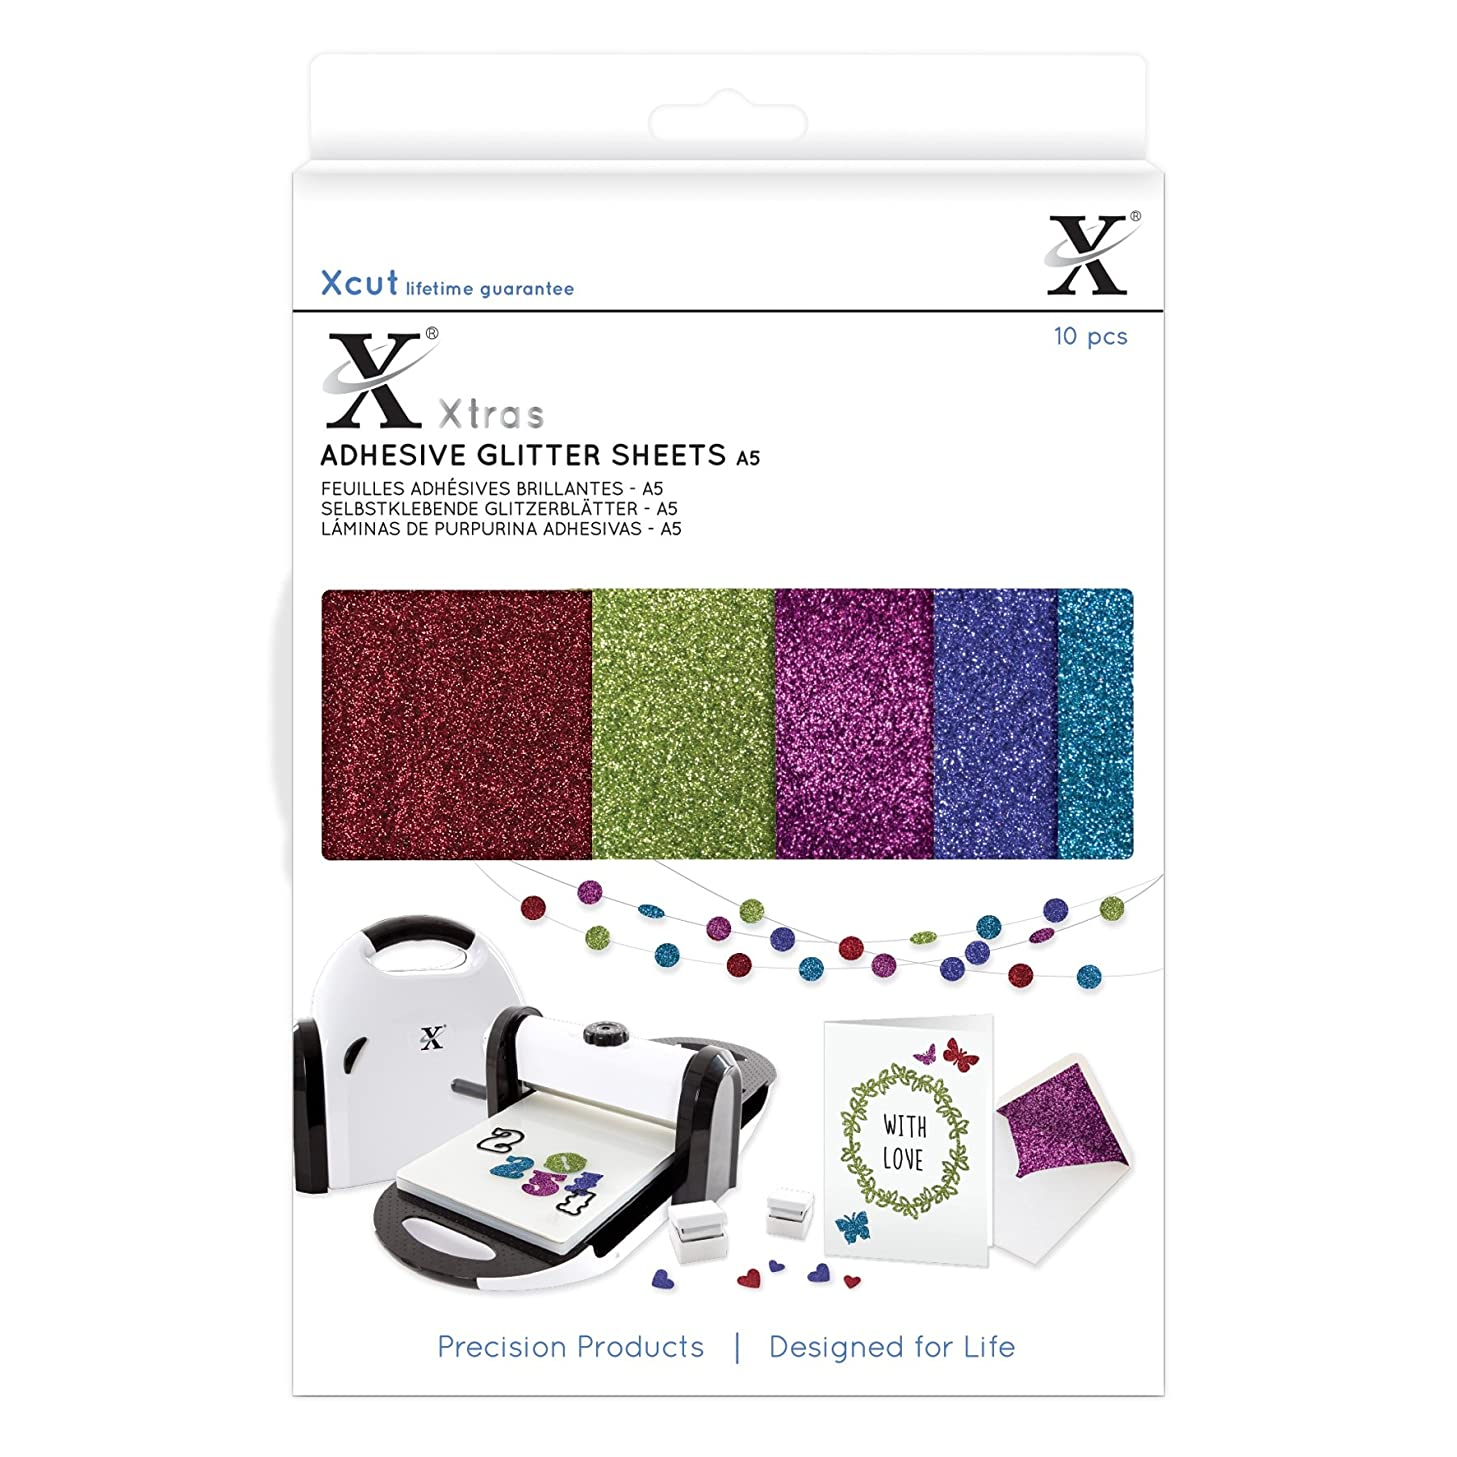 DOCrafts XCU174408 Xcut Xtra A5 Adhesive Darks Glitter Sheets (10 Pack), Multicolor